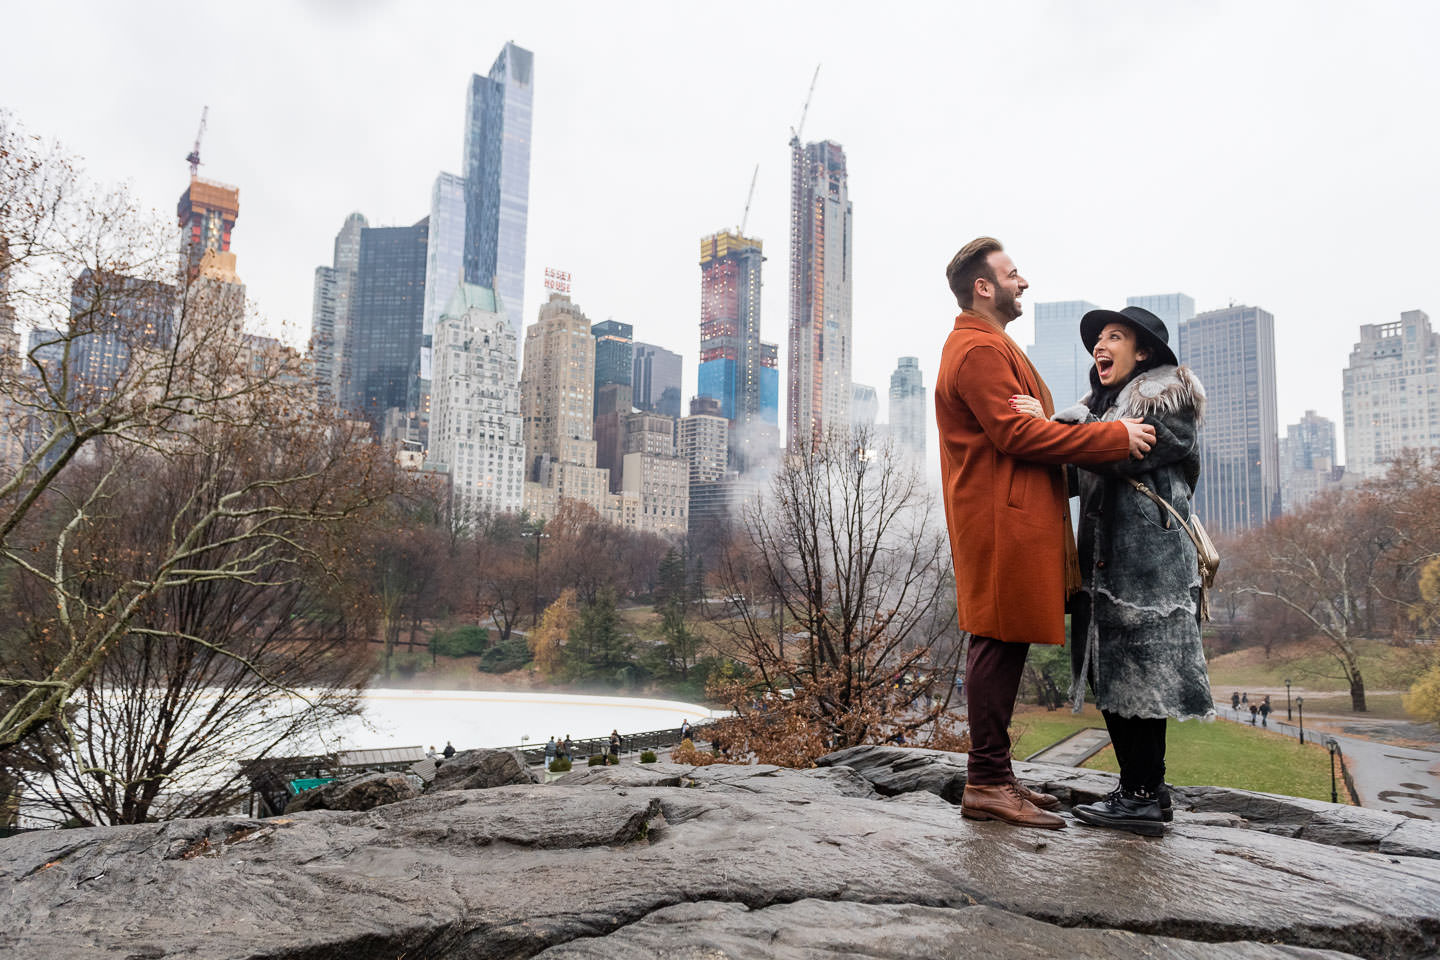 engagement session in central park by gapstow bridge in front of wollman rink